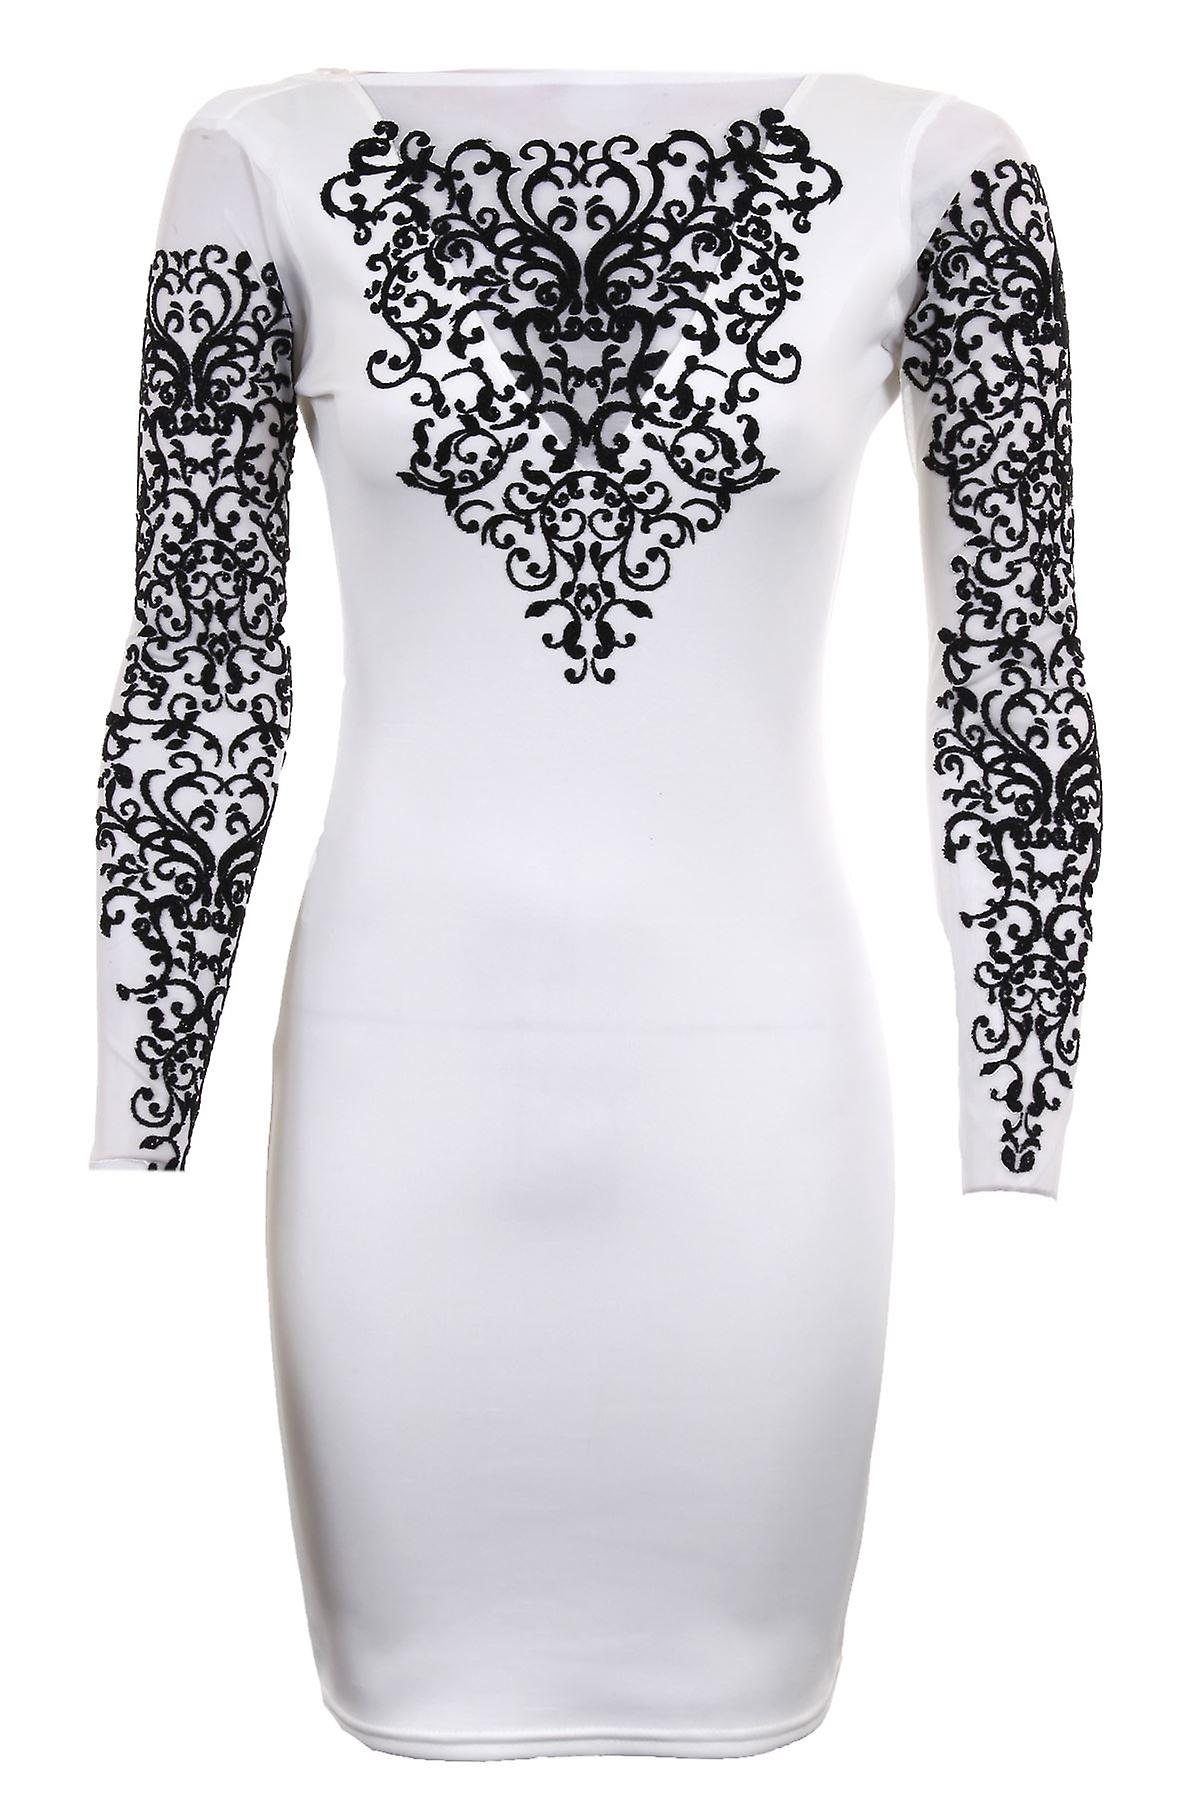 Ladies Long Sleeve Mesh Insert Low Back Glitter Beaded Women's Bodycon Dress